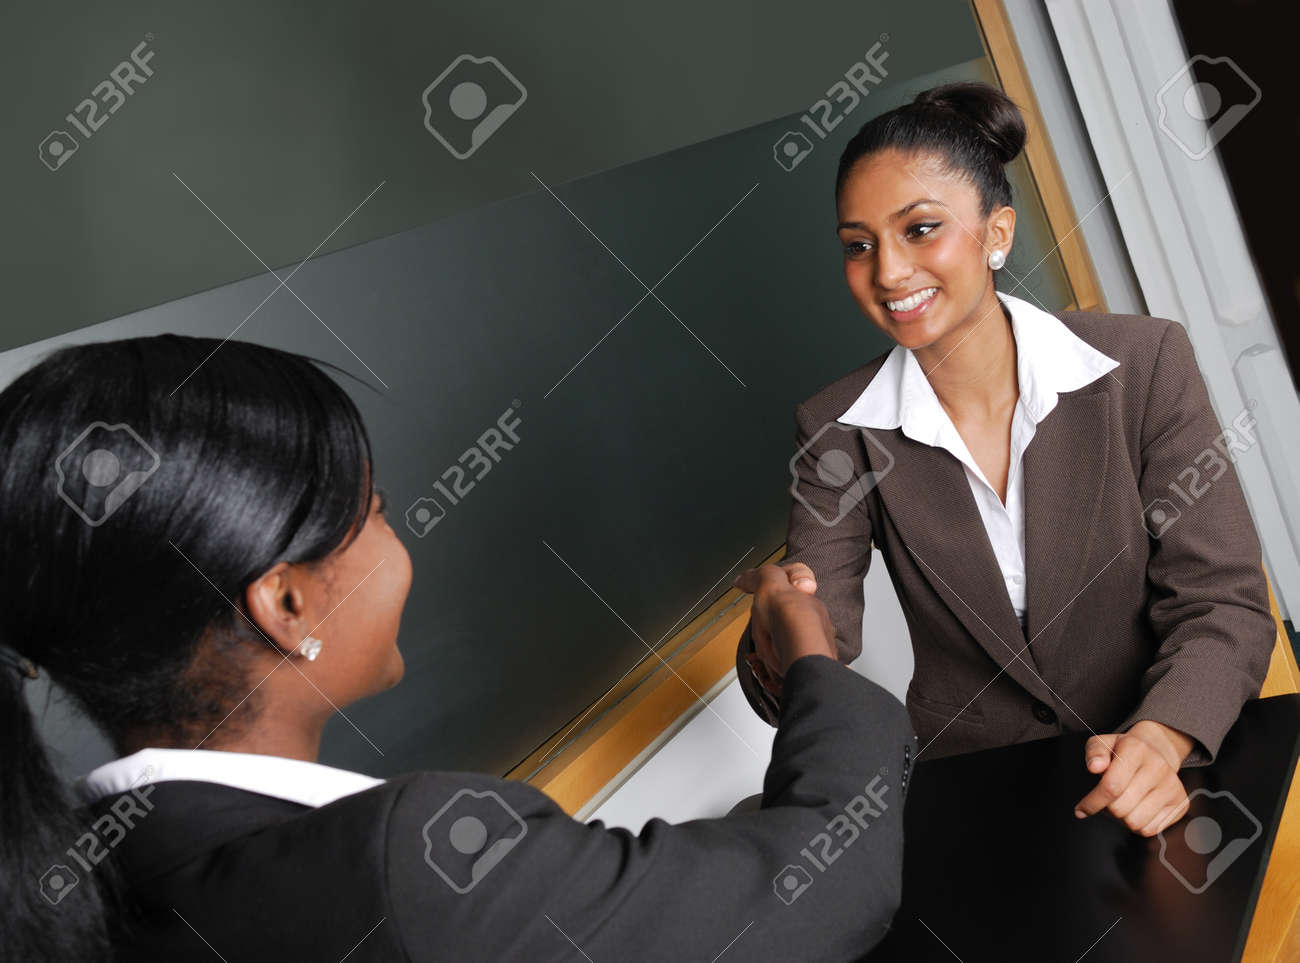 This is an image of a business team having a discussion. Stock Photo - 9436499